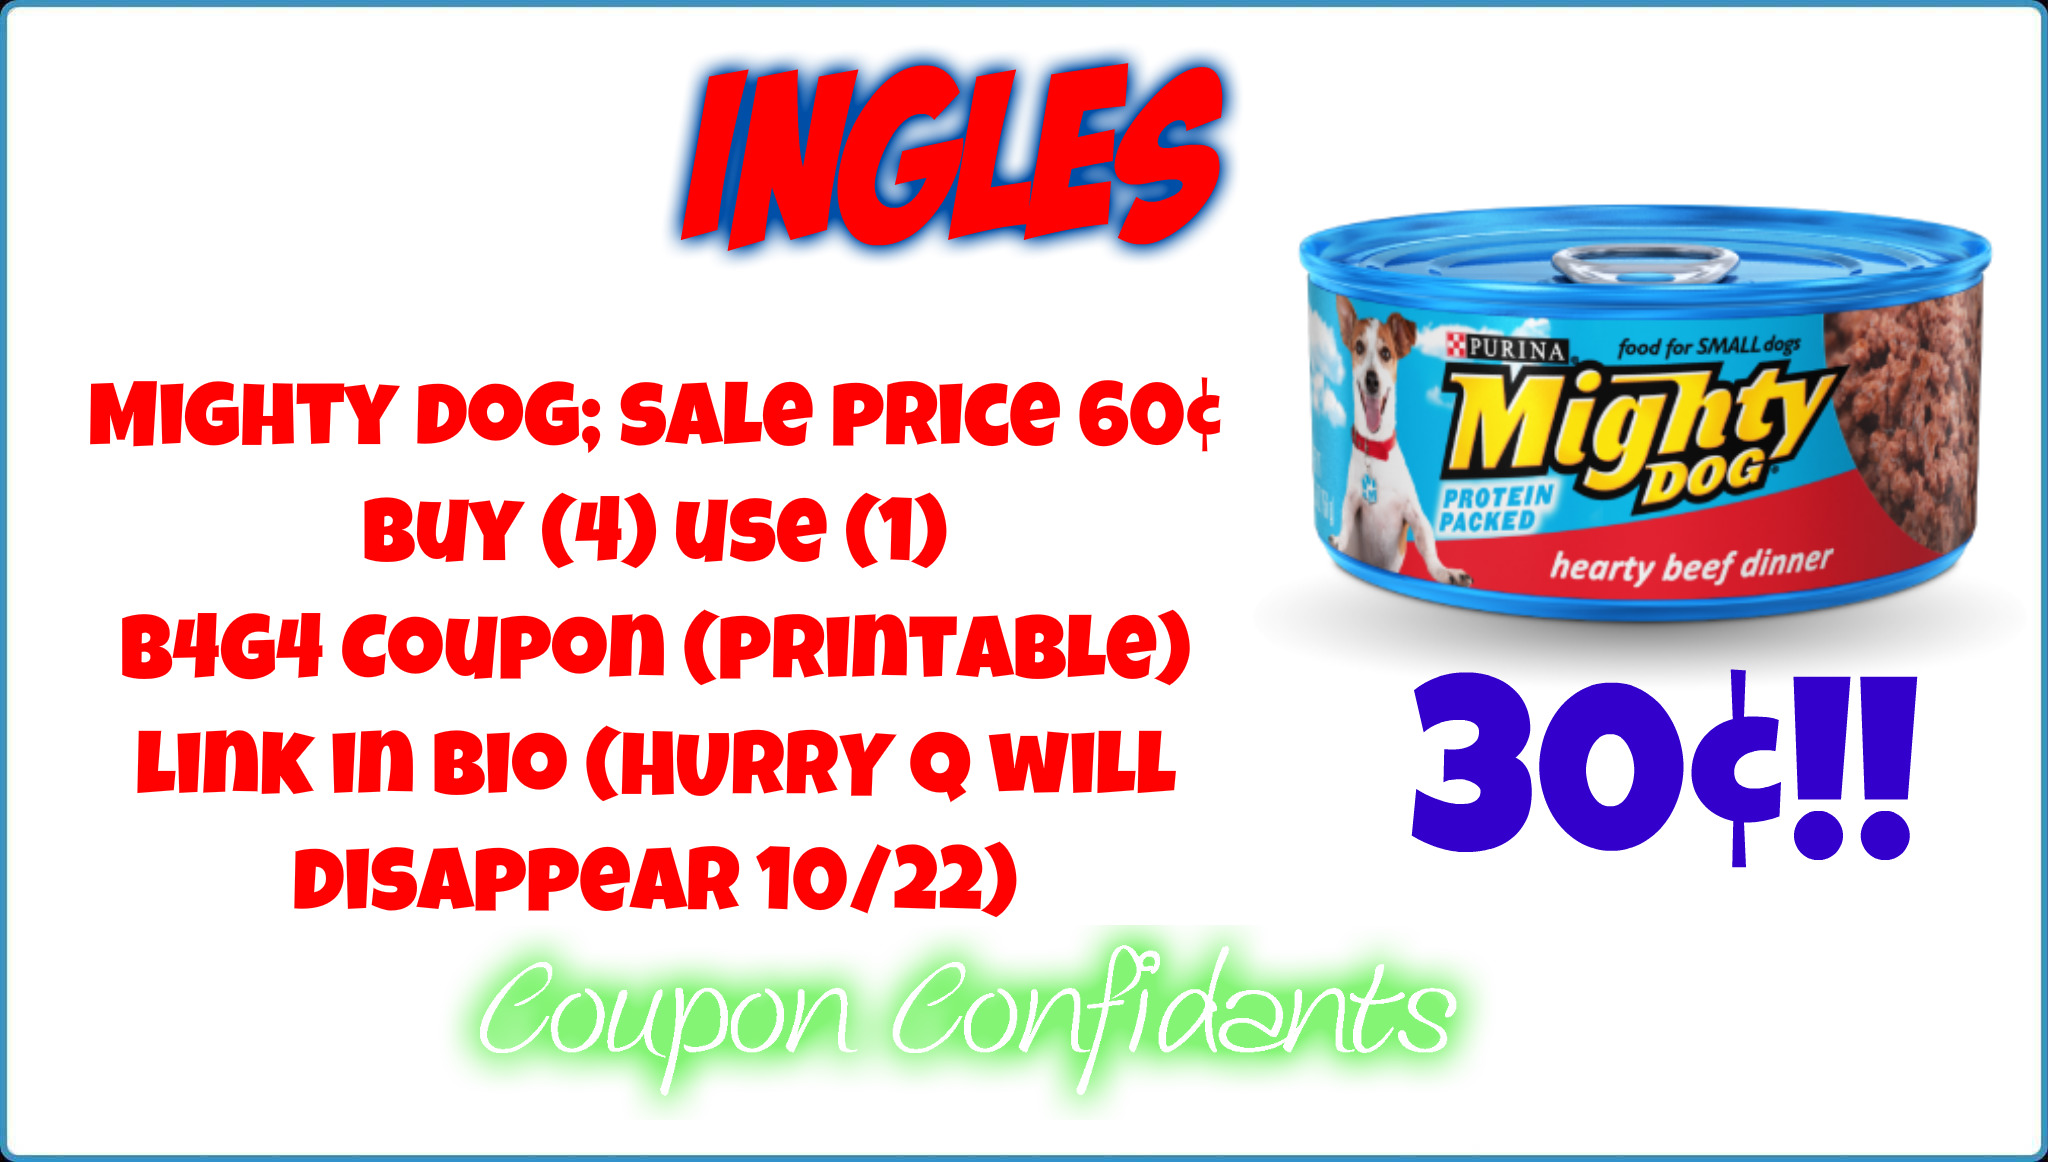 Mighty dog coupons